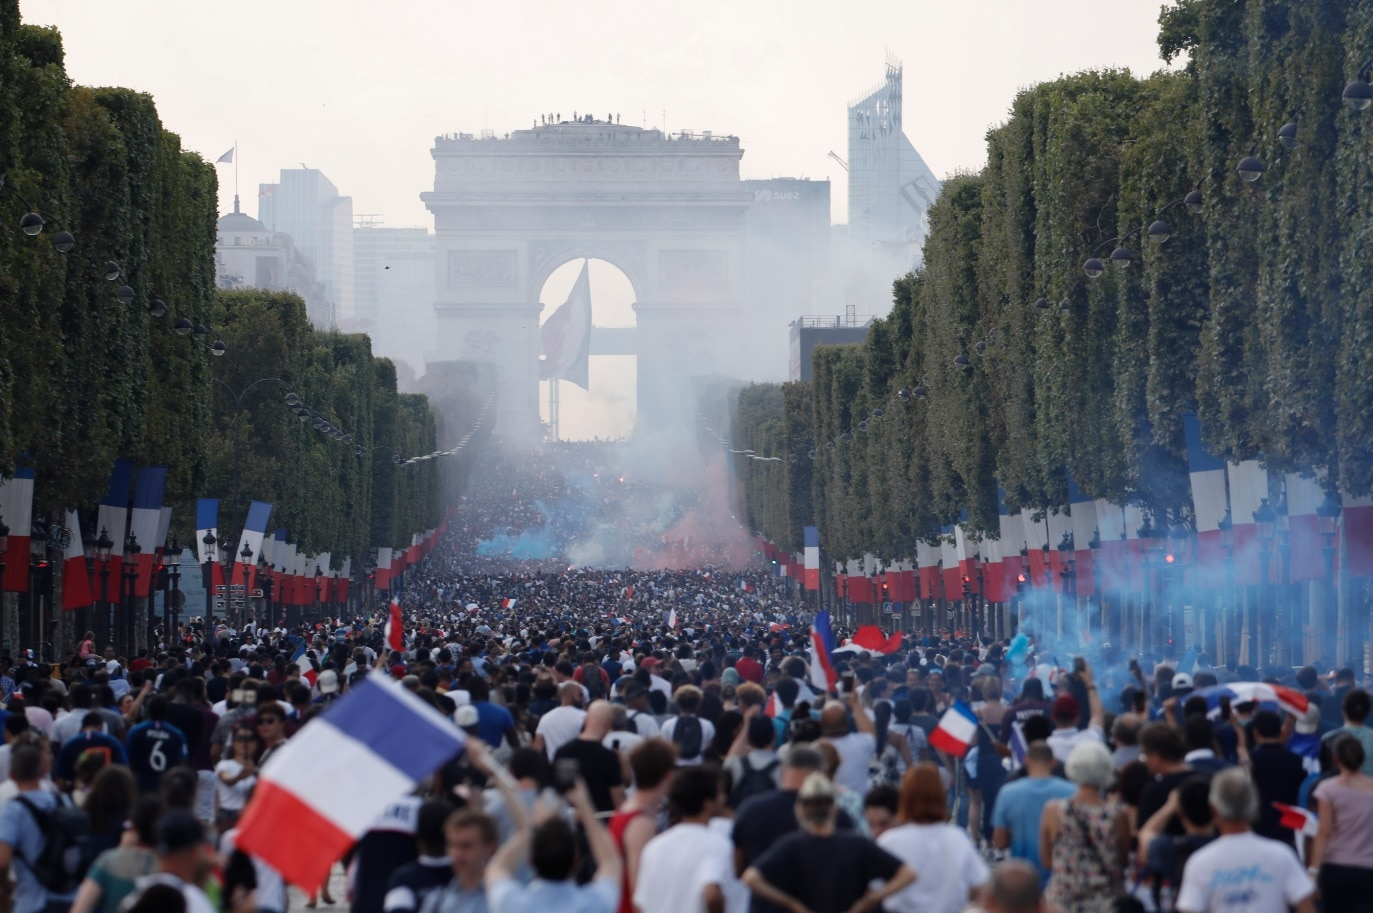 French supporters gather on the Champs-Elysees avenue after the victory of France at the FIFA World Cup 2018 final match